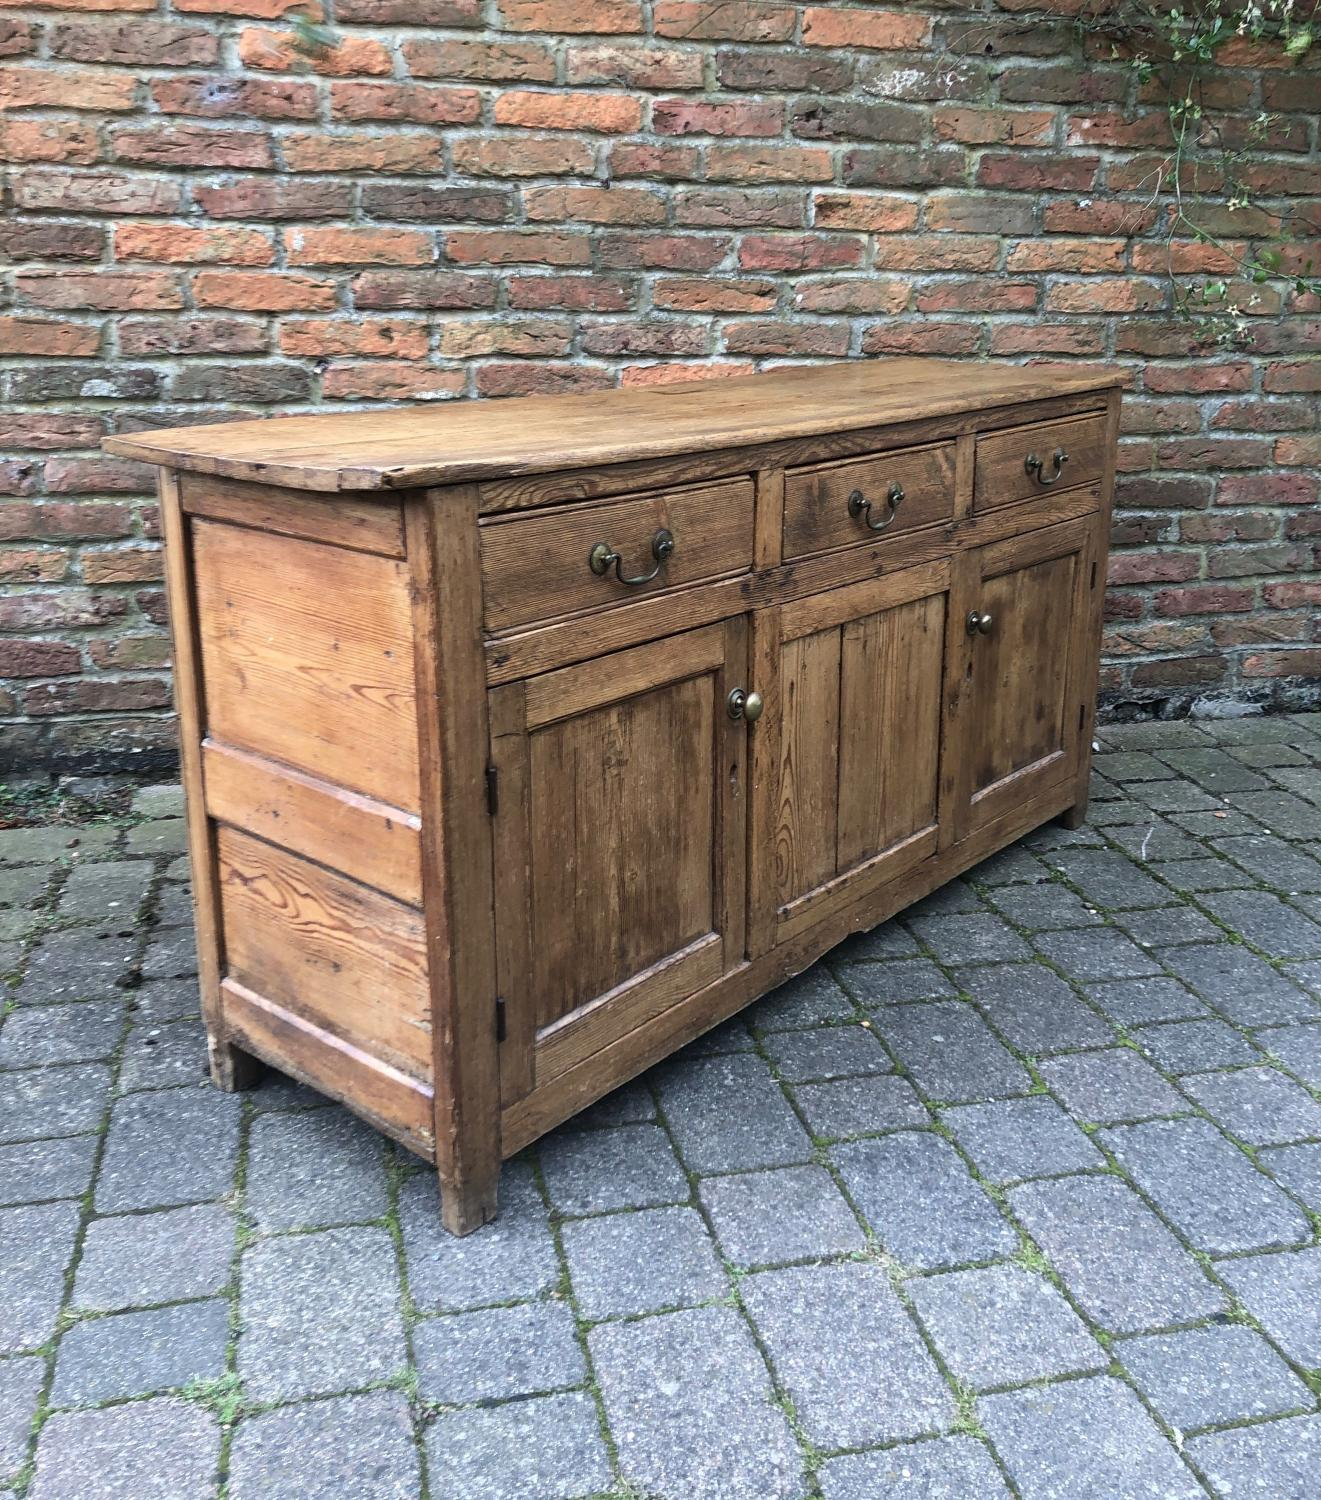 Georgian Pine Dresser Base or Sideboard with Panelled Sides.